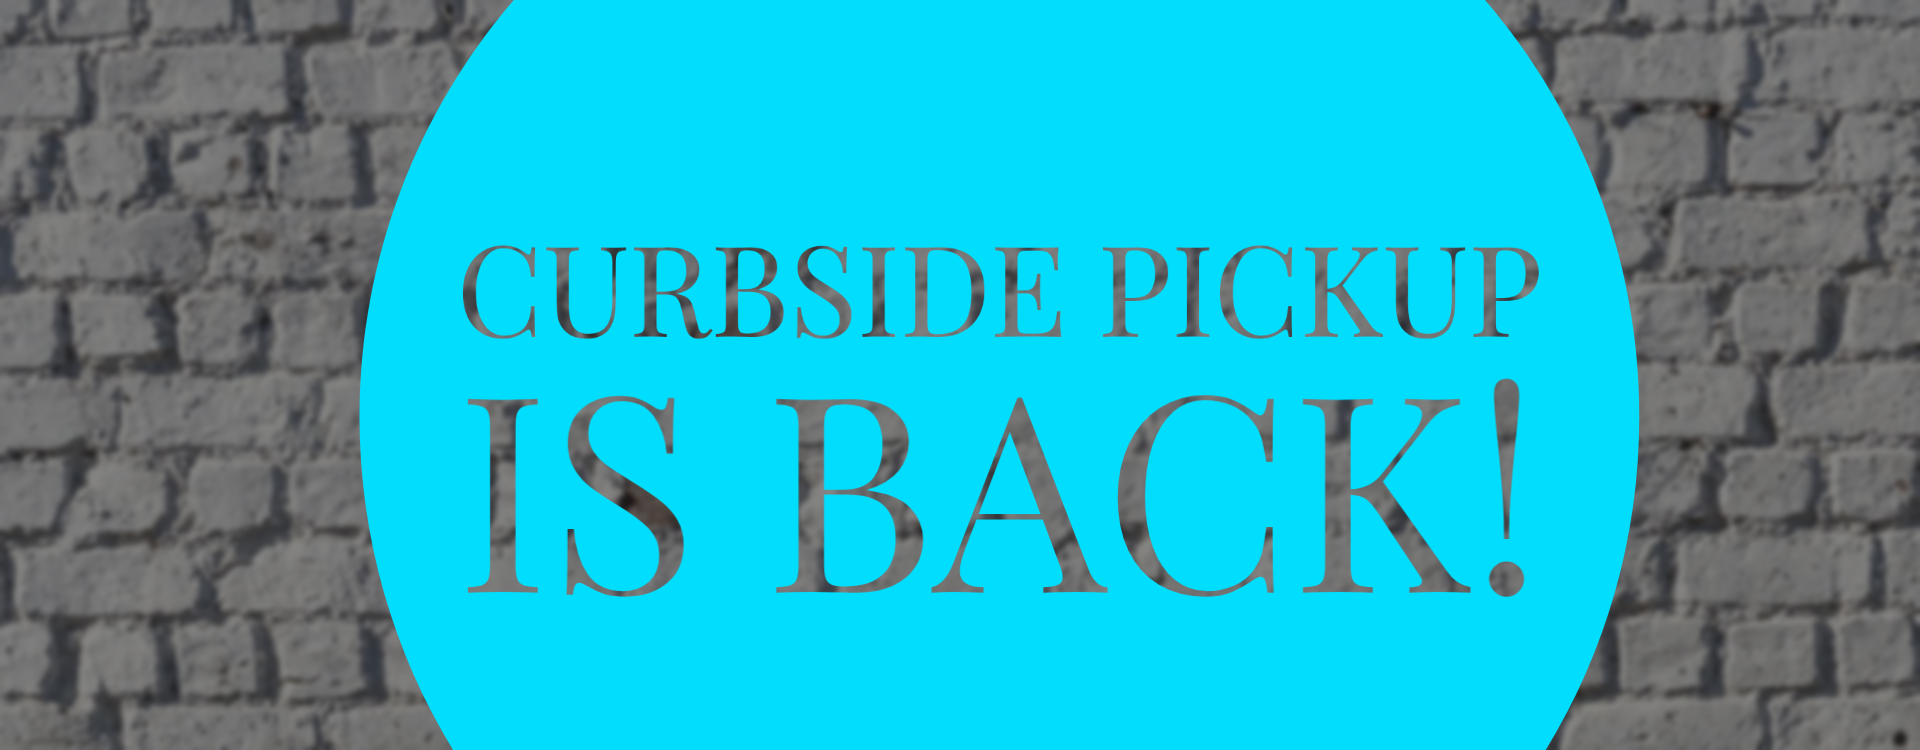 Curbside Pick Up & Free Local Delivery Now Available Port Hope and Bowmanville!